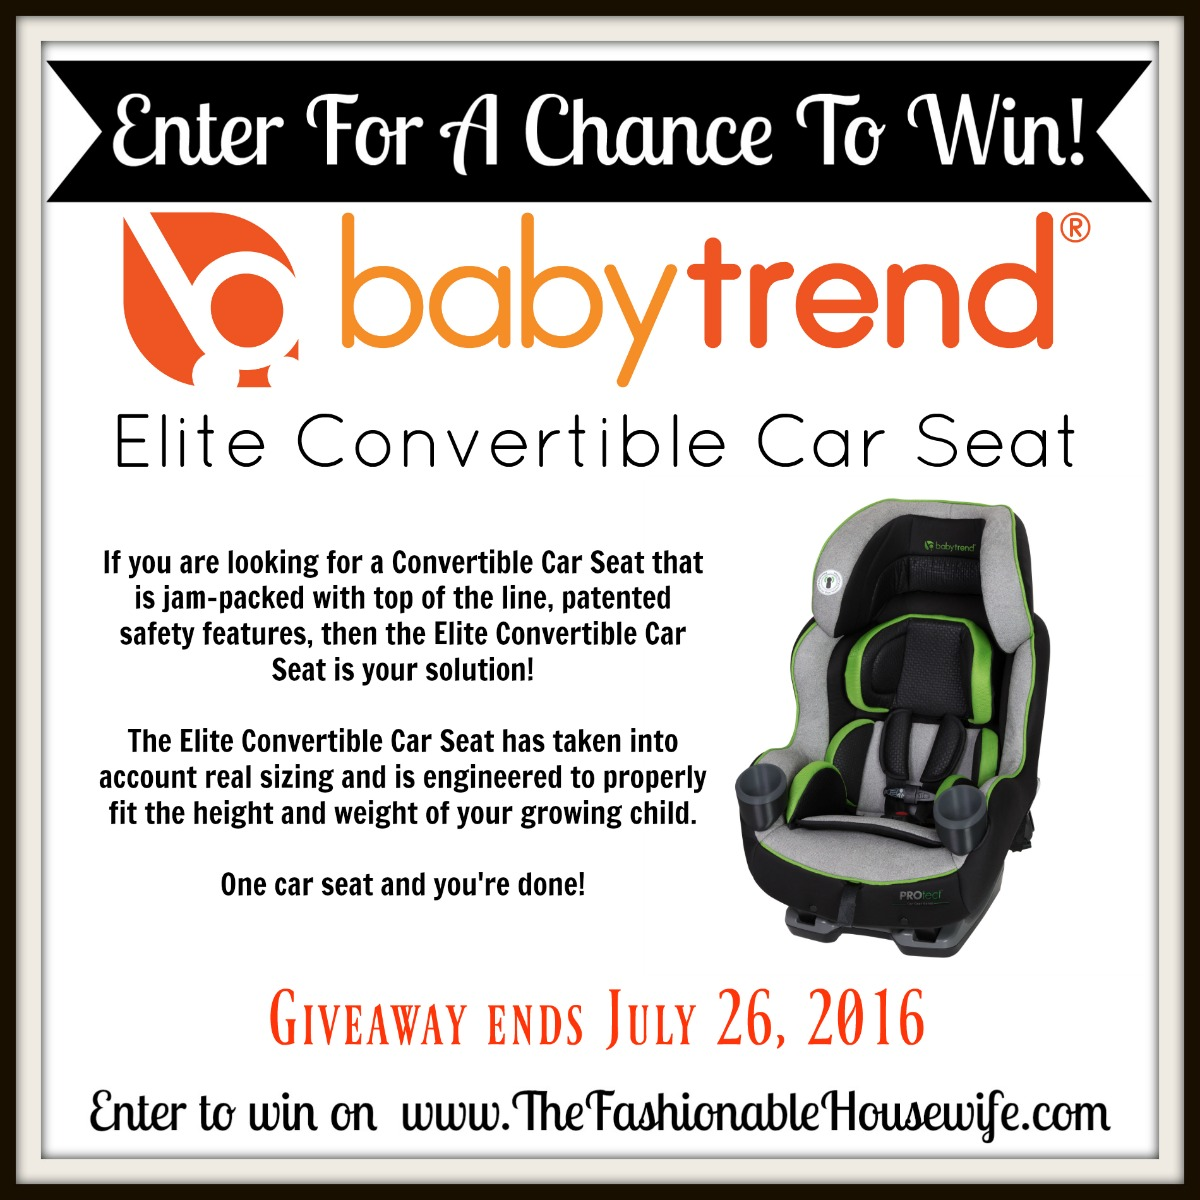 Enter to win the Babytrend Elite Convertible Car Seat